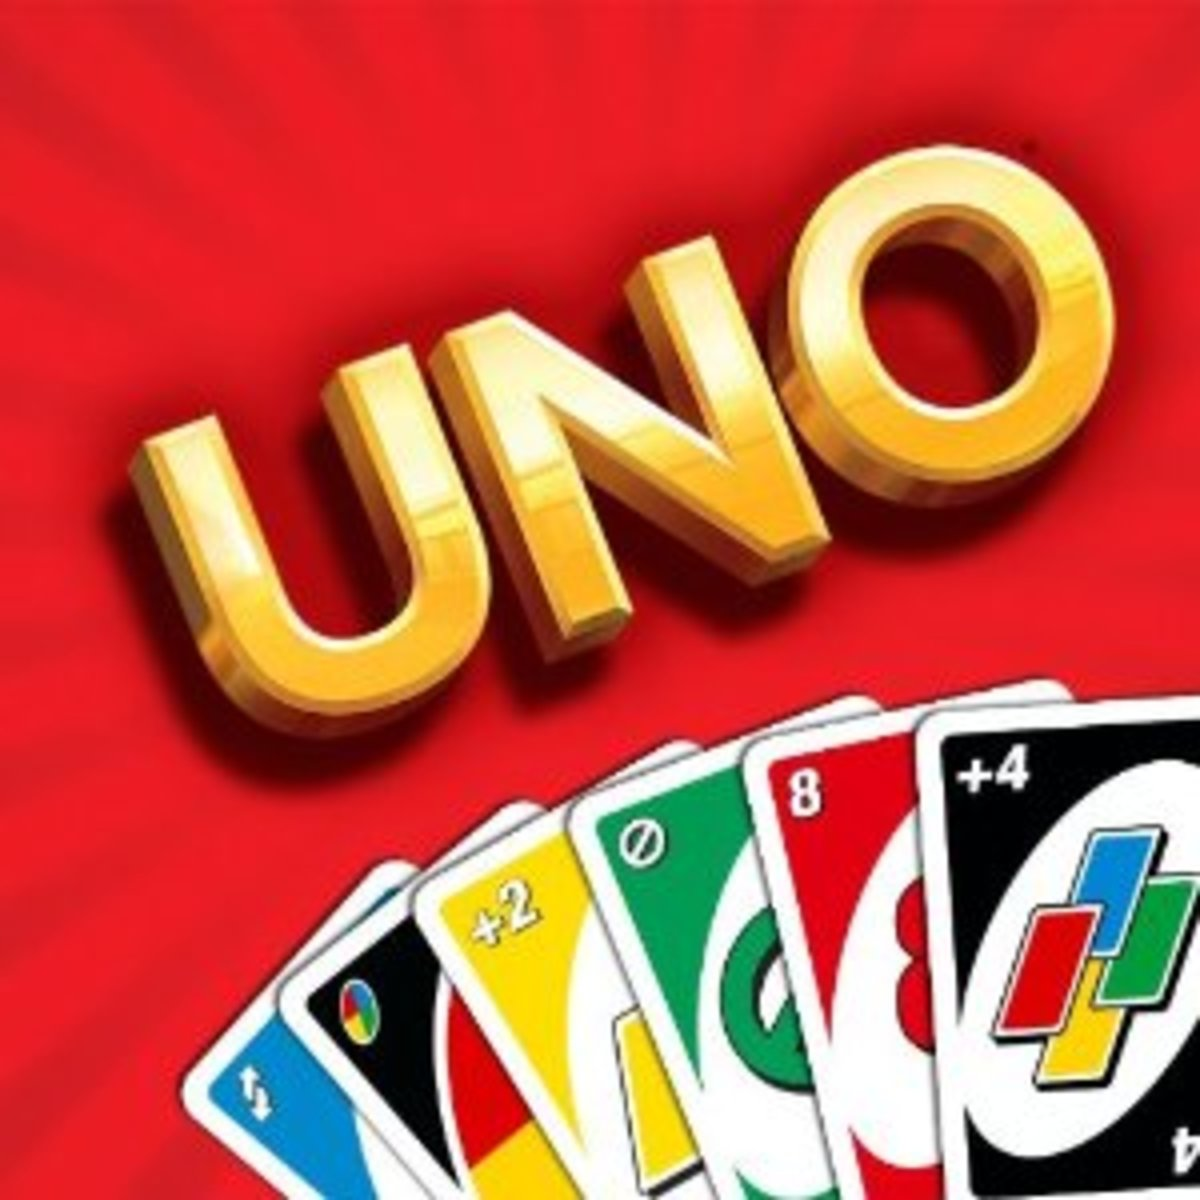 stress---playing-with-uno-cards